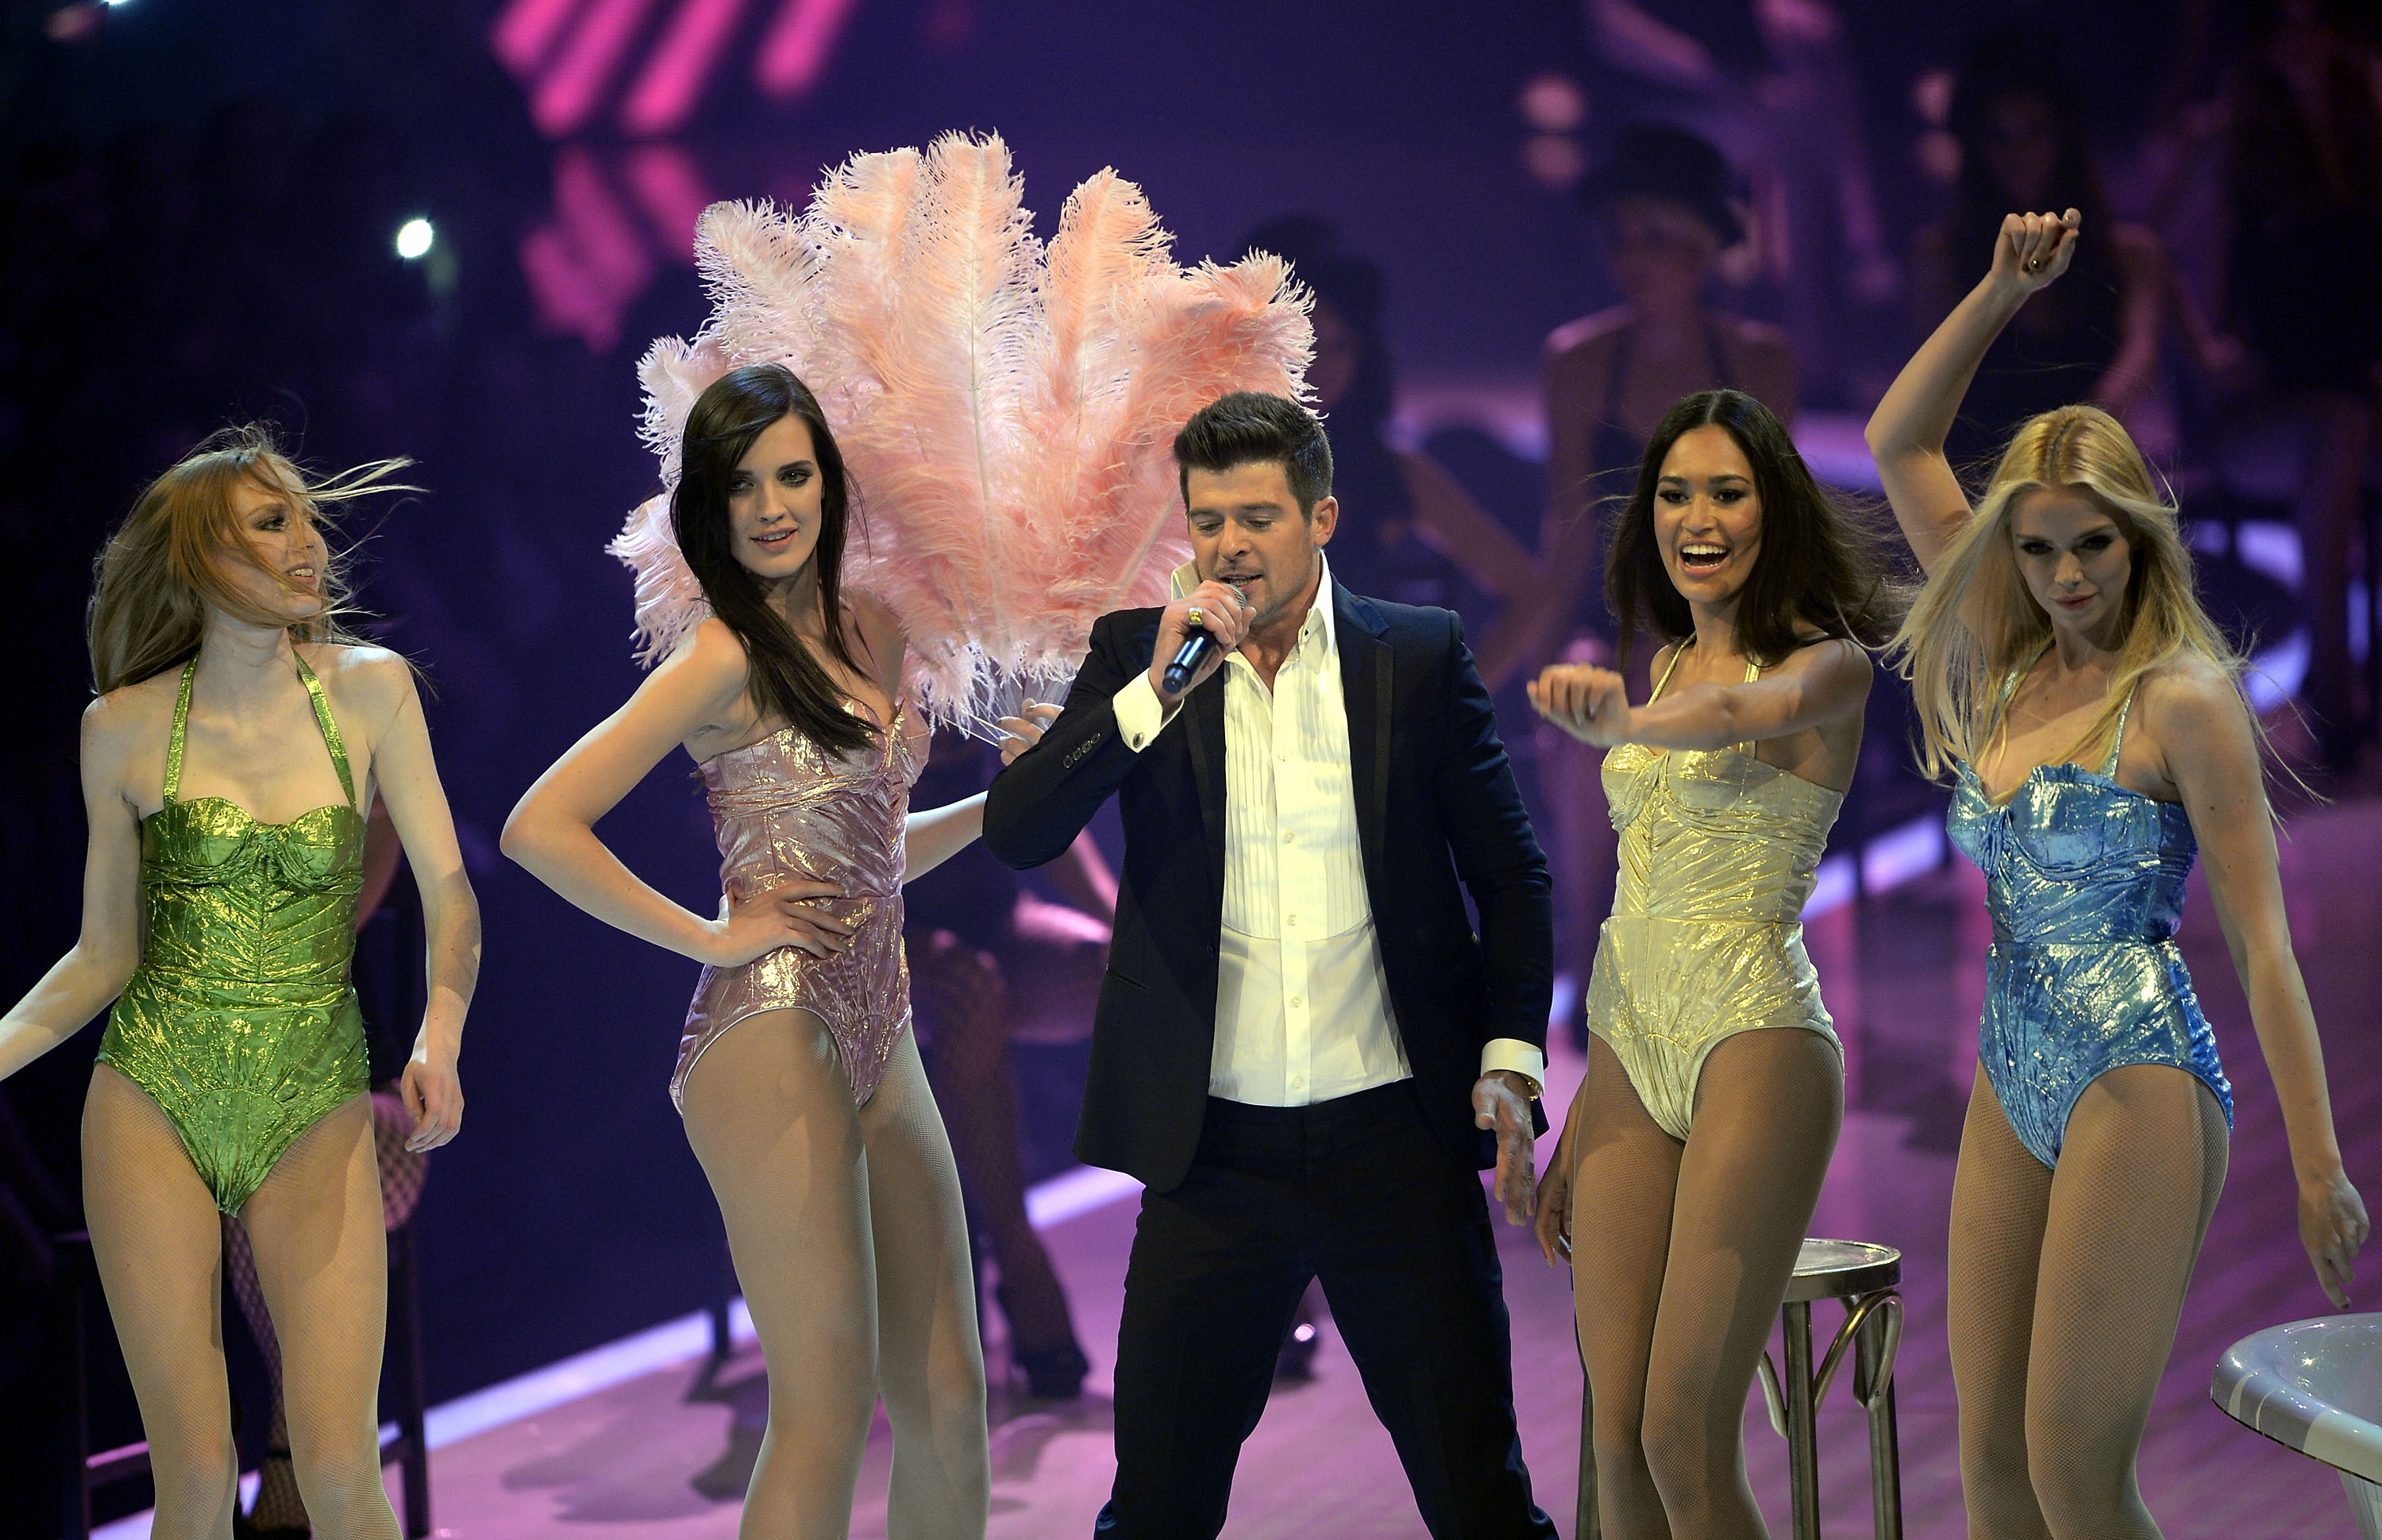 MANNHEIM, GERMANY - MAY 30:  Singer Robin Thicke and the four finalist Sabrina Elsner (R), Luise Will (2ndL), Lovelyn Enebech